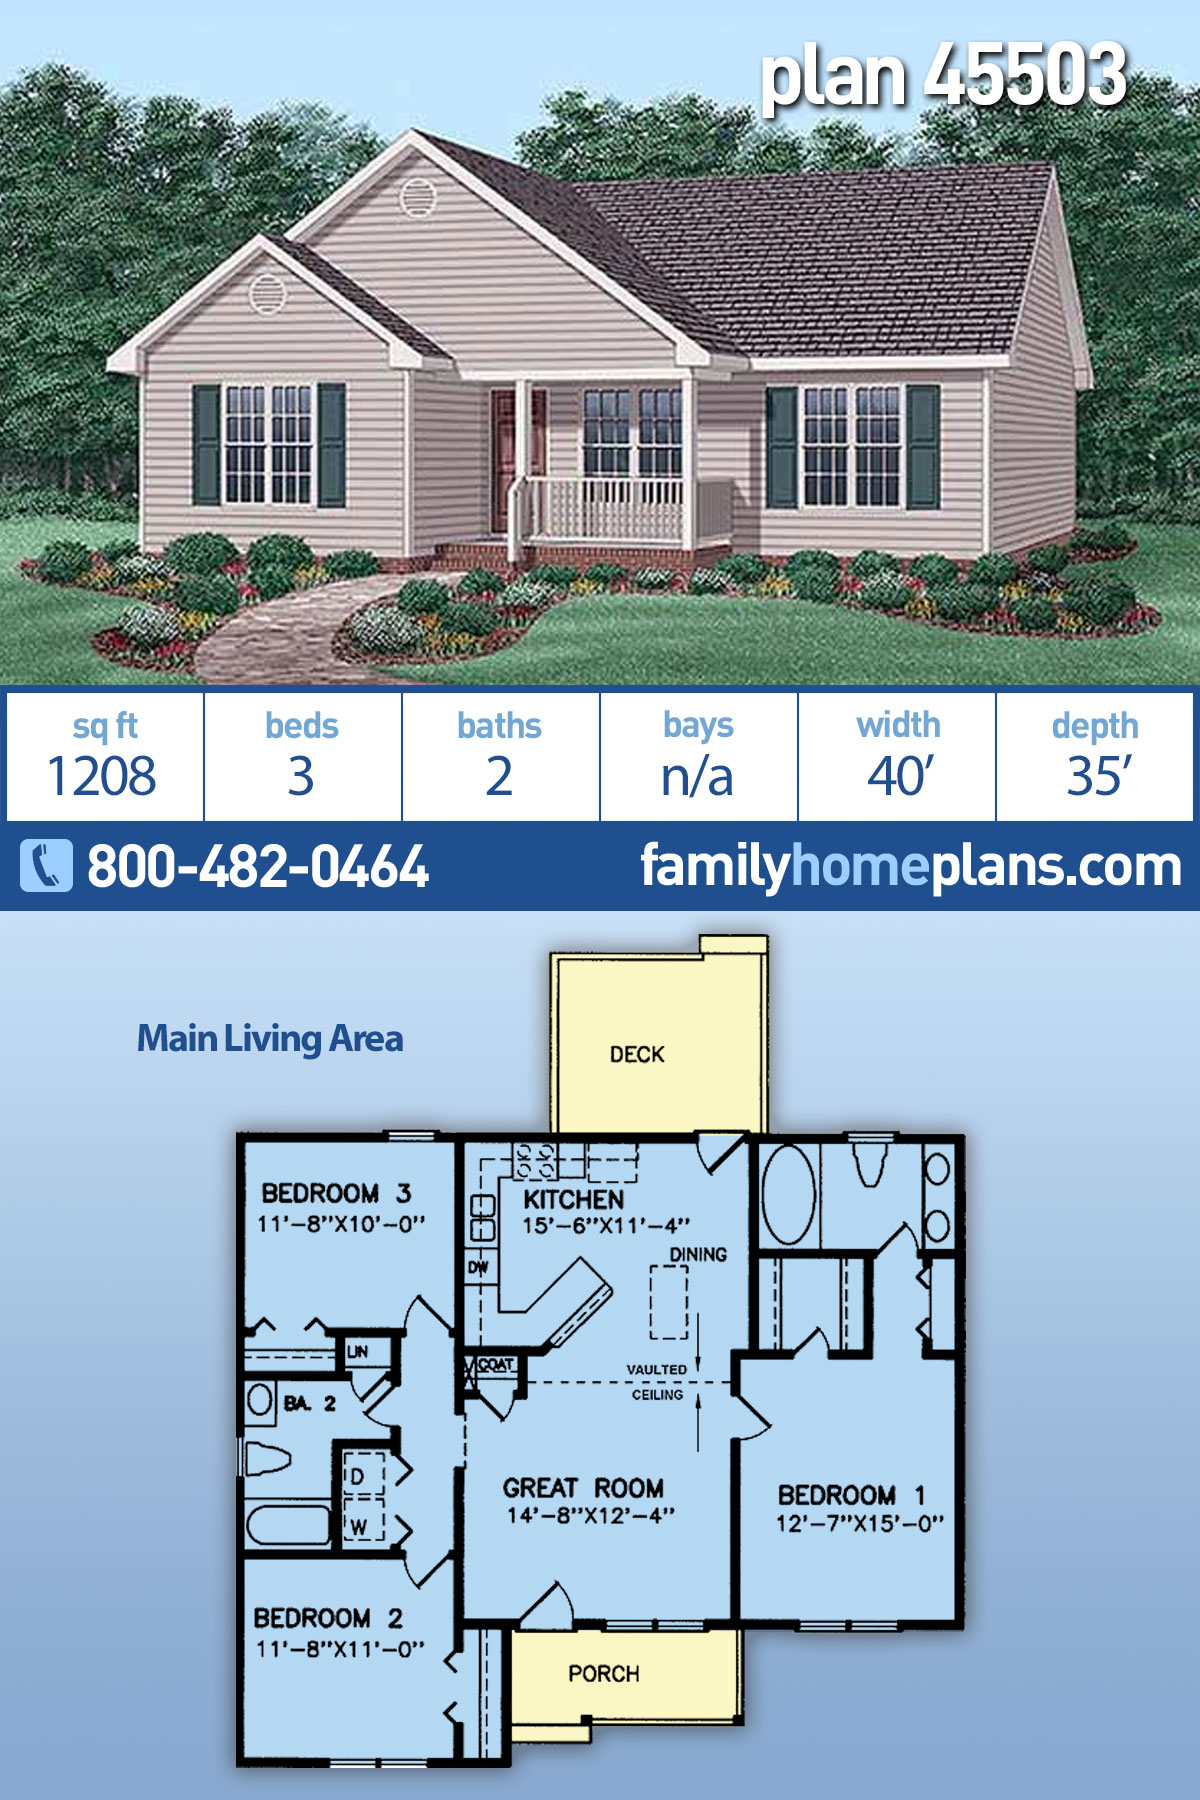 Narrow Lot, Traditional House Plan 45503 with 3 Beds, 2 Baths